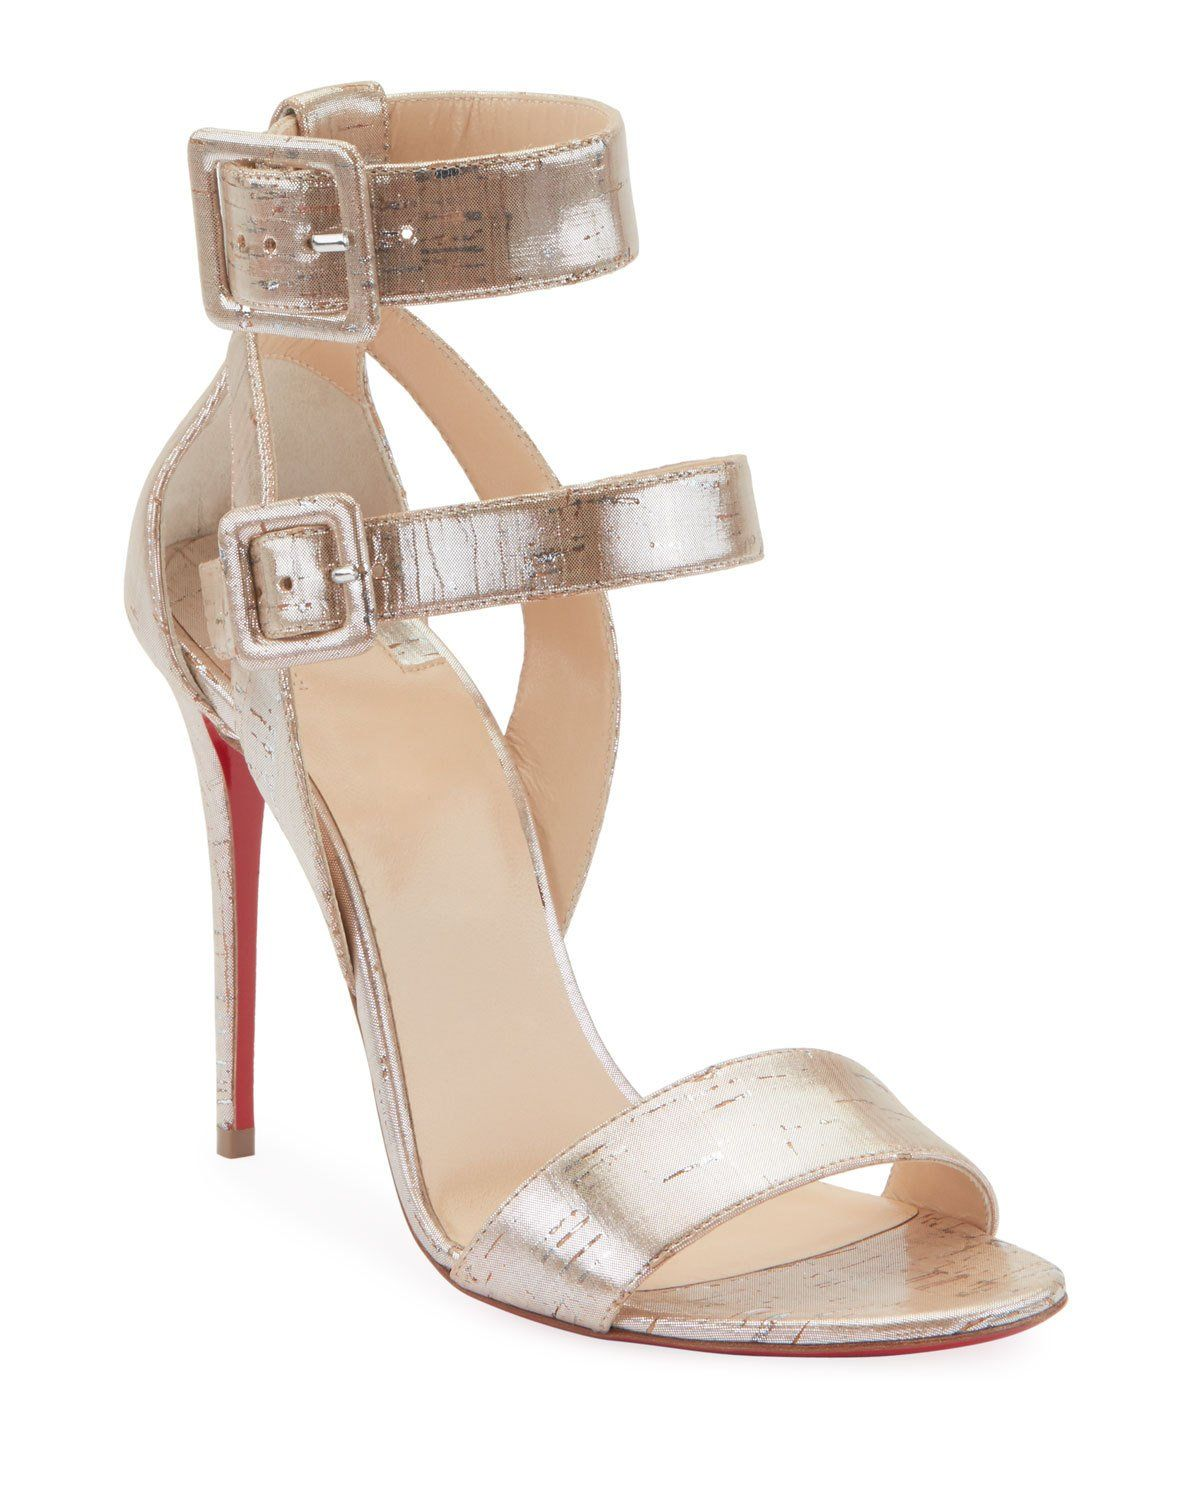 35295aec4ab Christian Louboutin Multipot 100 Cork Red Sole Sandals in 2019 ...